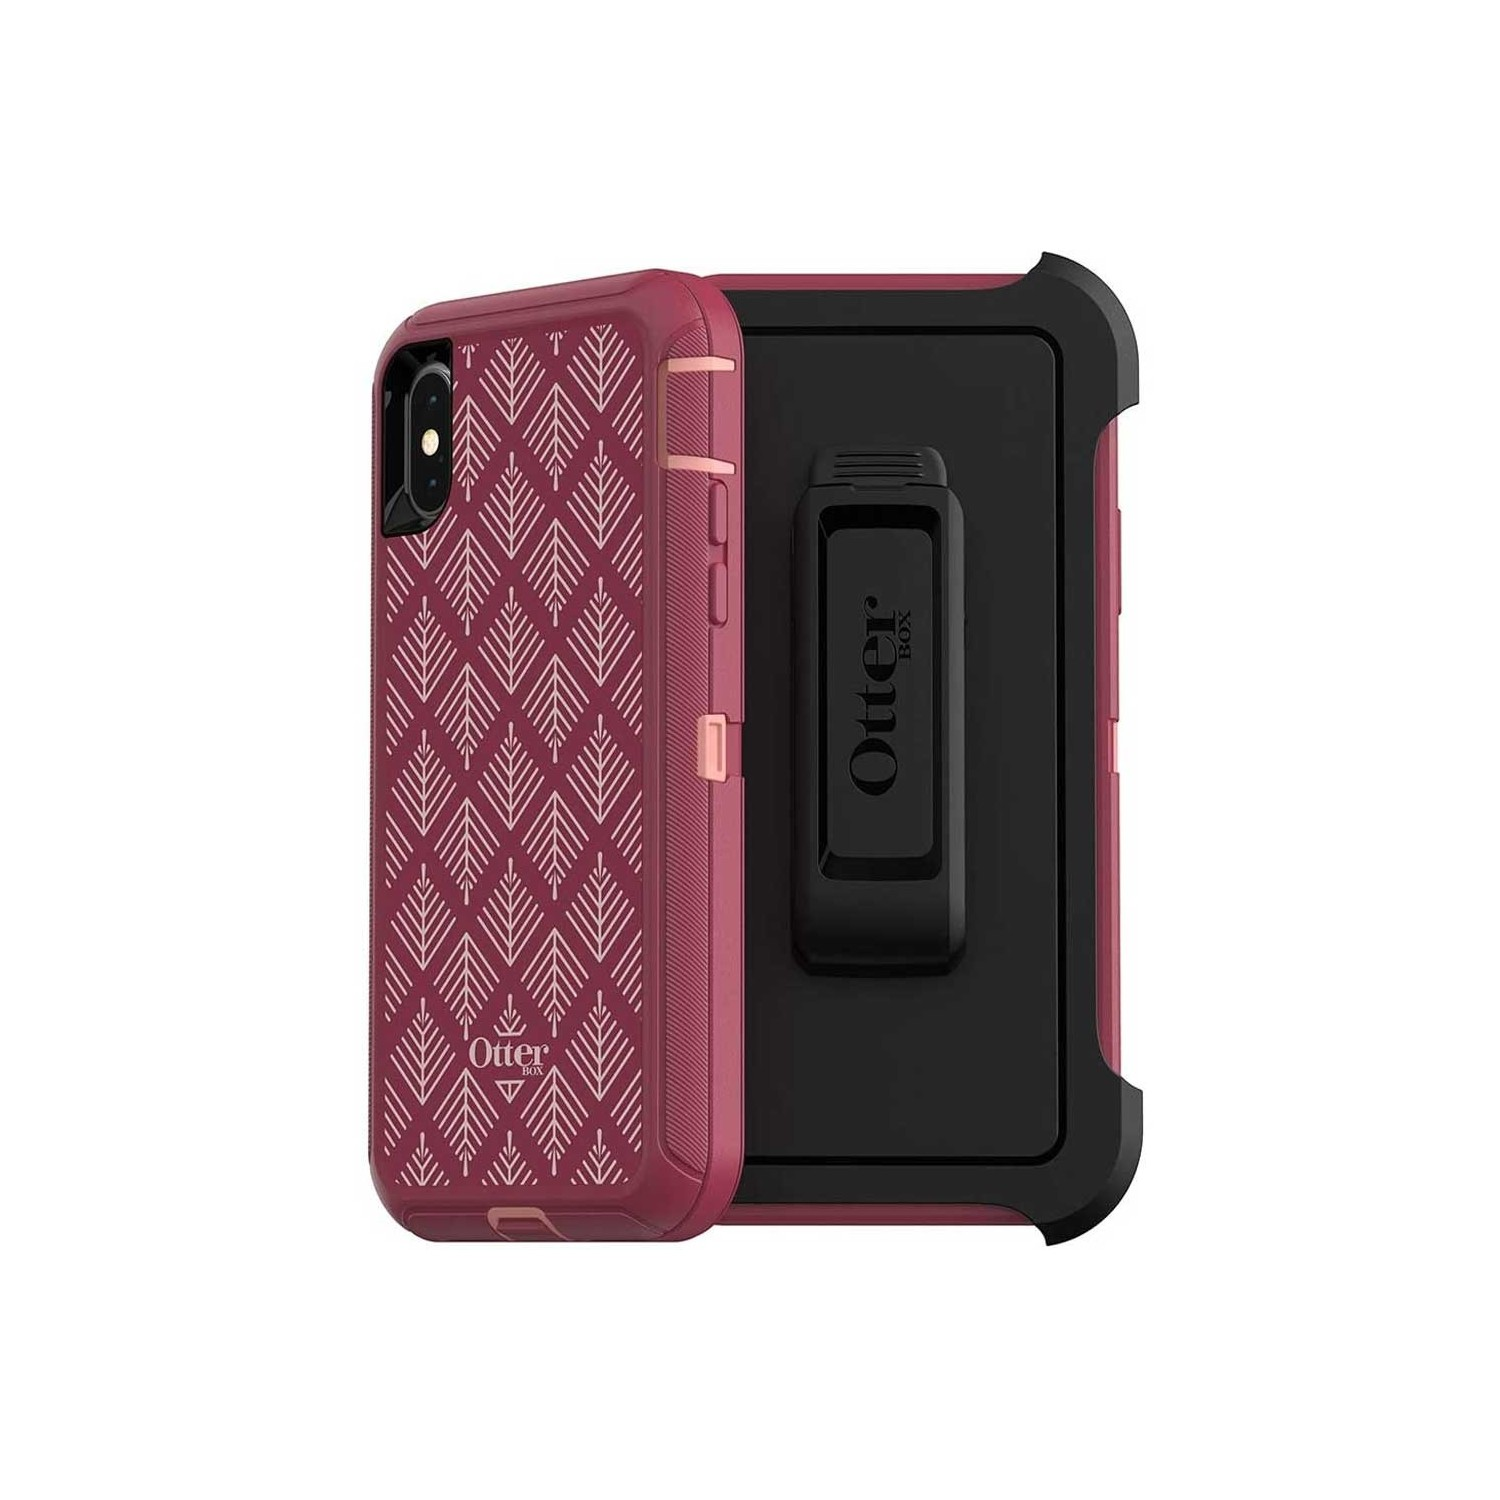 Case - Otterbox Defender for iPhone Xs Happa